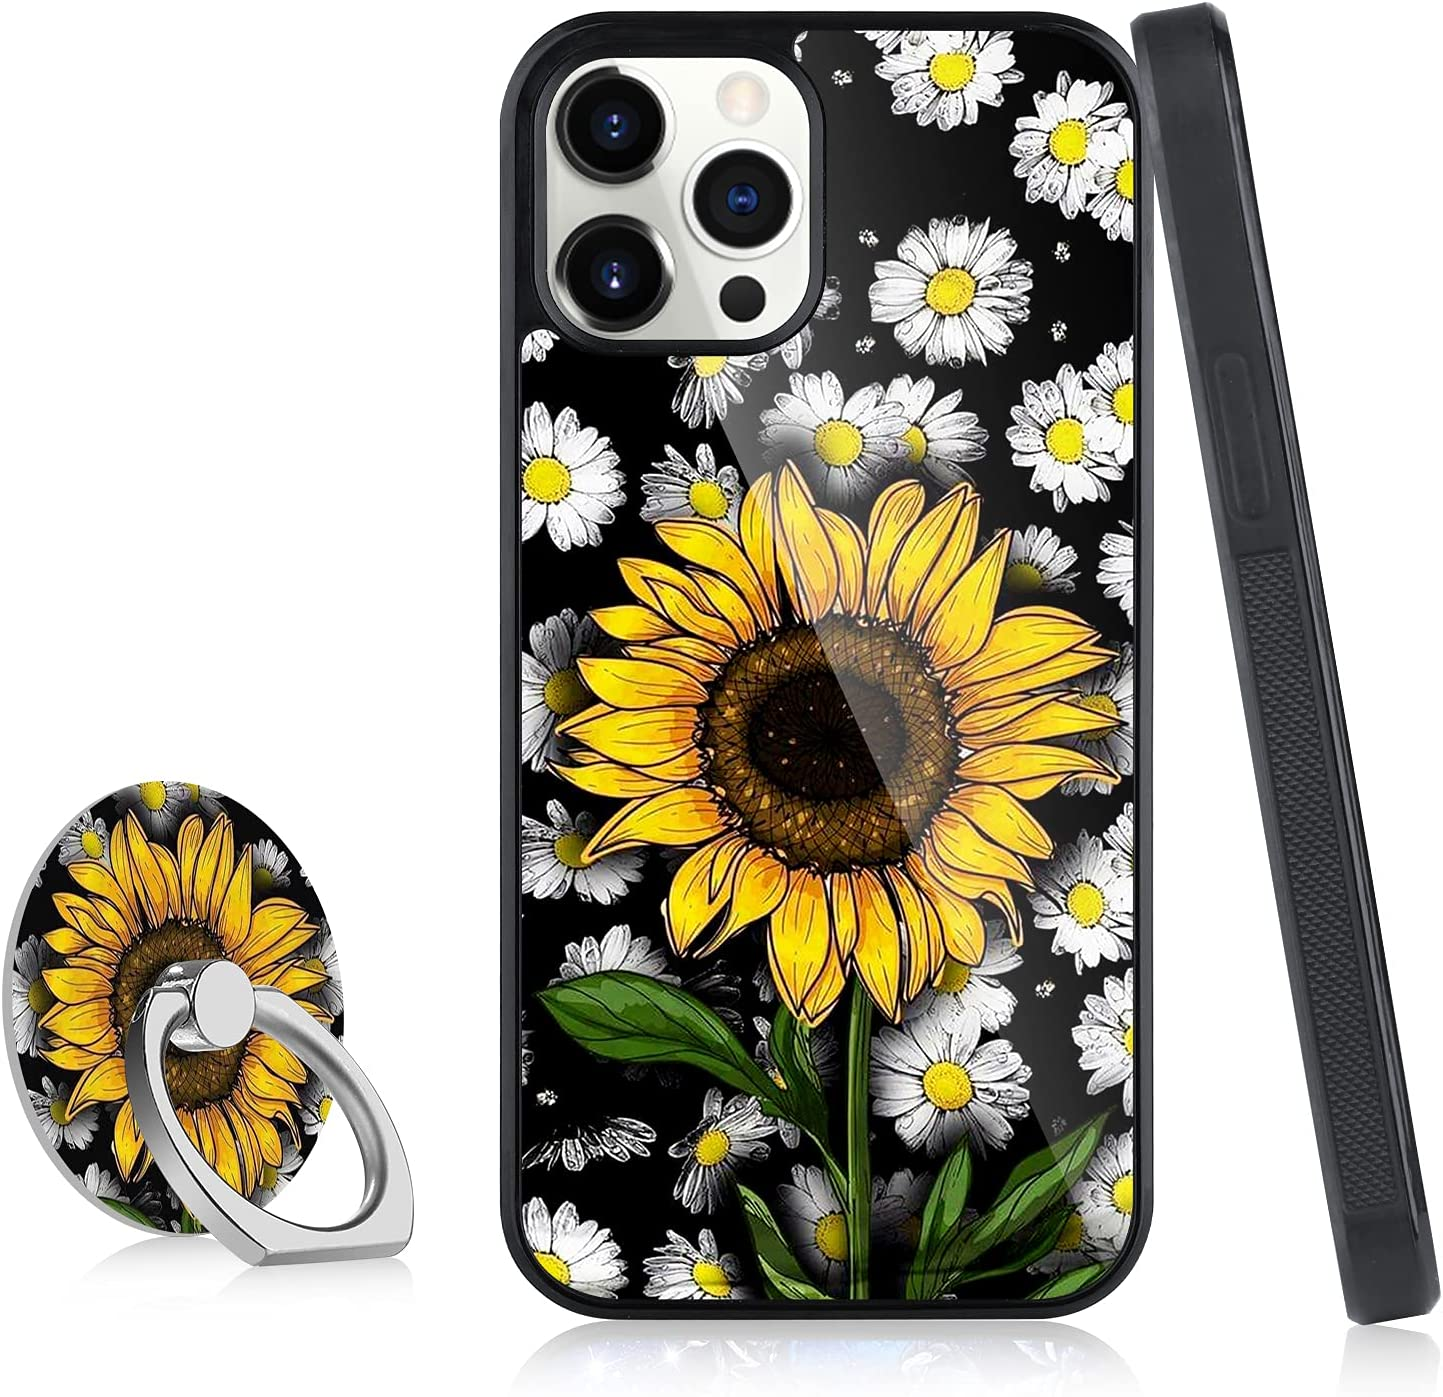 OOK Designed for iPhone 13 Case for Women Girls Flower Floral Sunflower Blossom Cute Design with Ring Holder Stand Kickstand Slim Protective Hard Back Bumper Cover Case